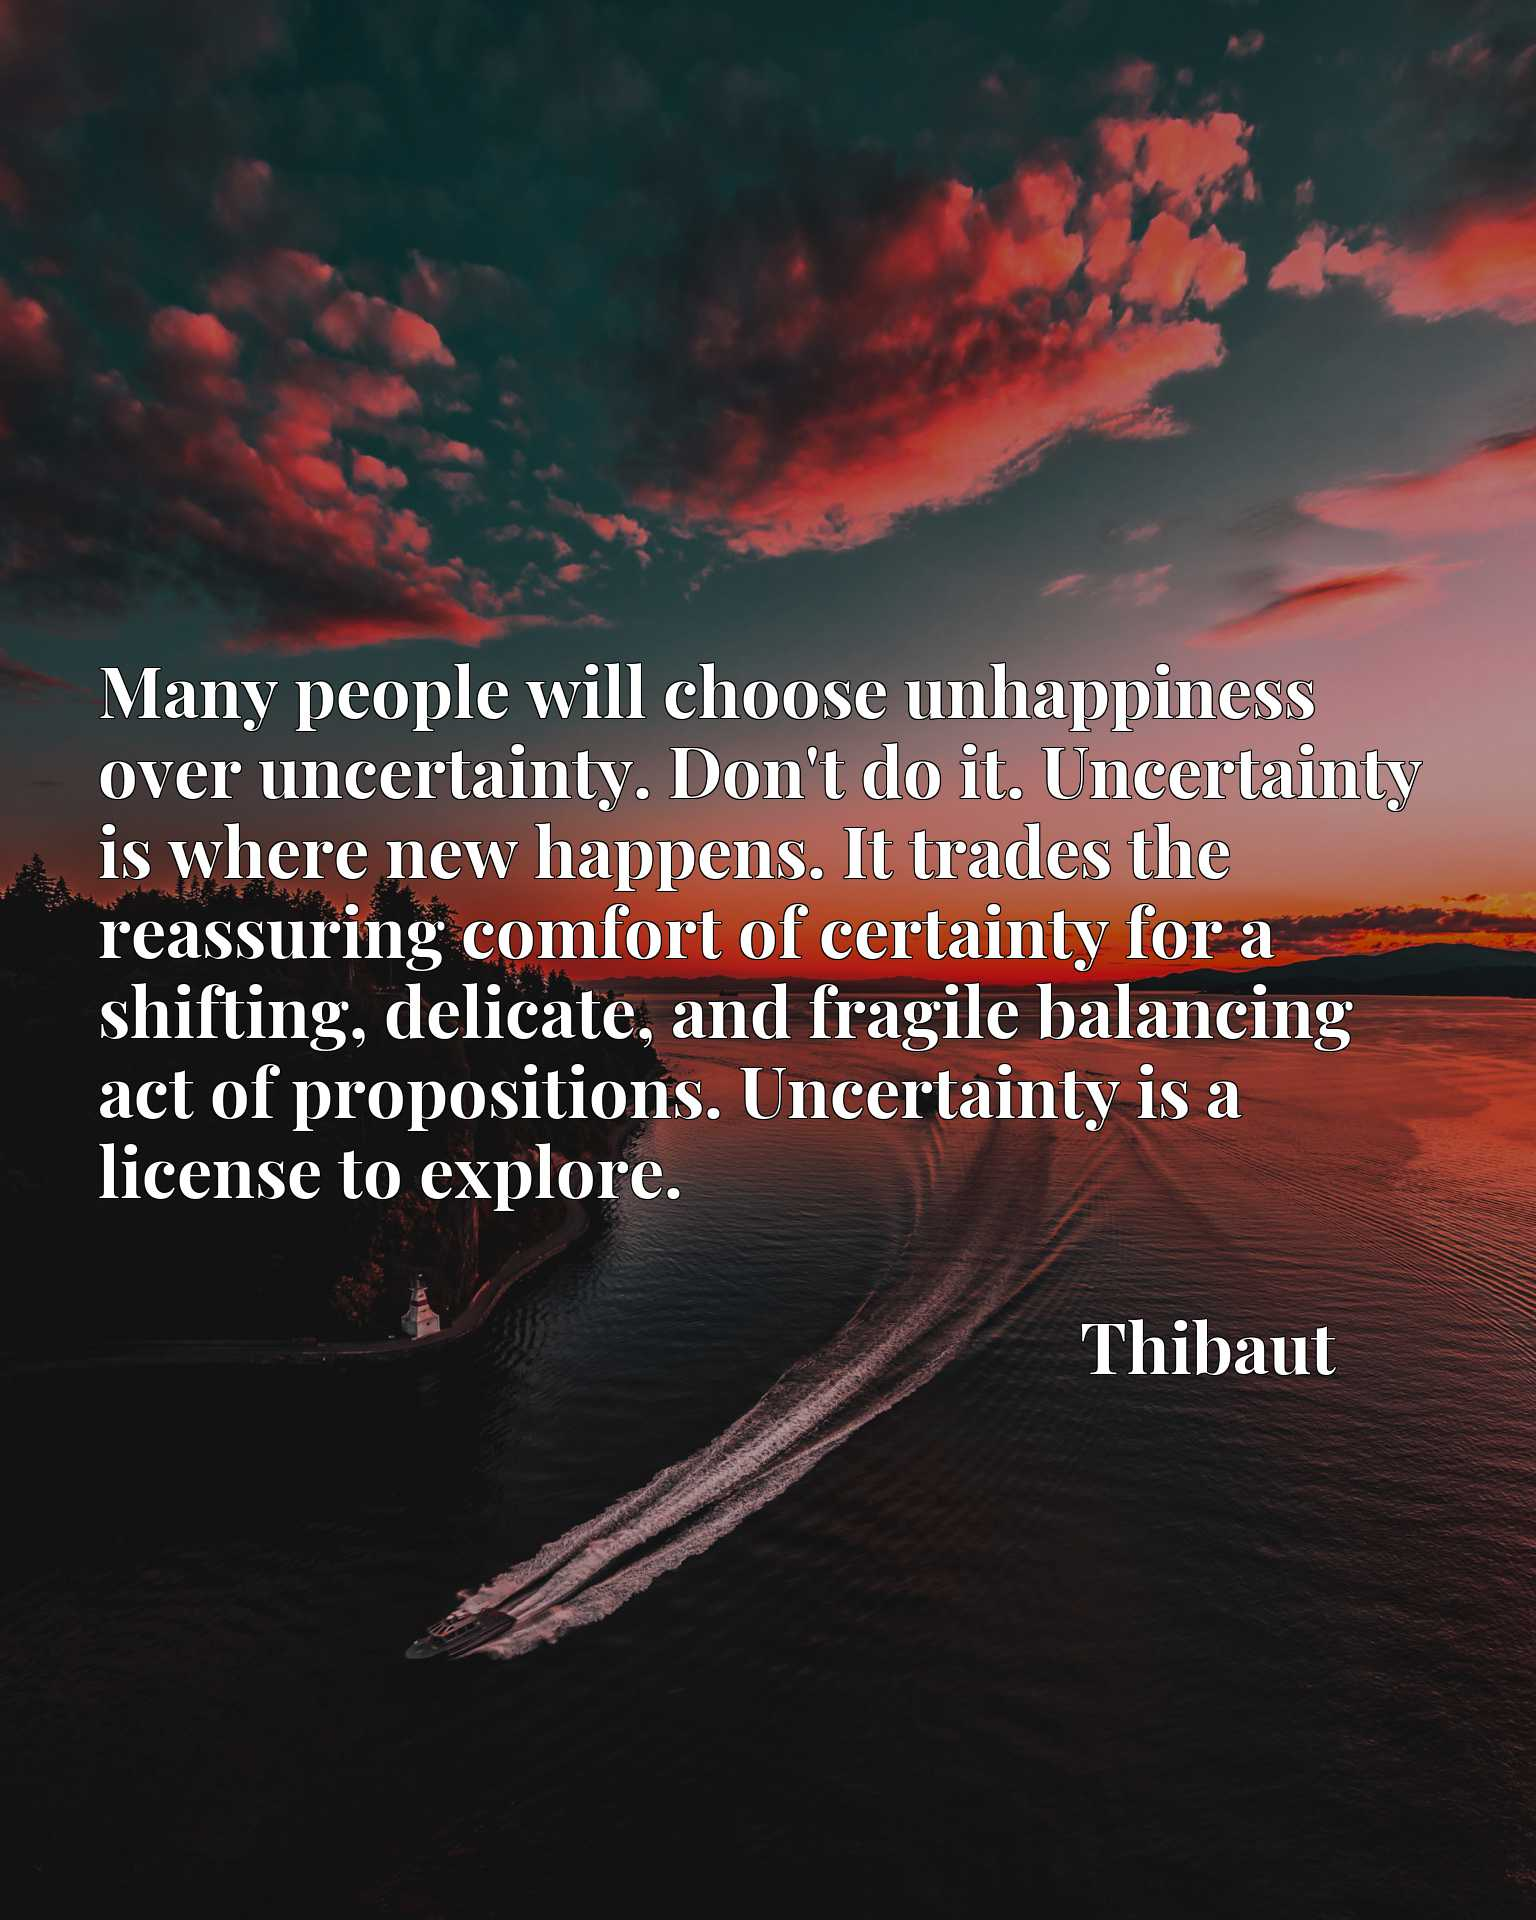 Many people will choose unhappiness over uncertainty. Don't do it. Uncertainty is where new happens. It trades the reassuring comfort of certainty for a shifting, delicate, and fragile balancing act of propositions. Uncertainty is a license to explore.